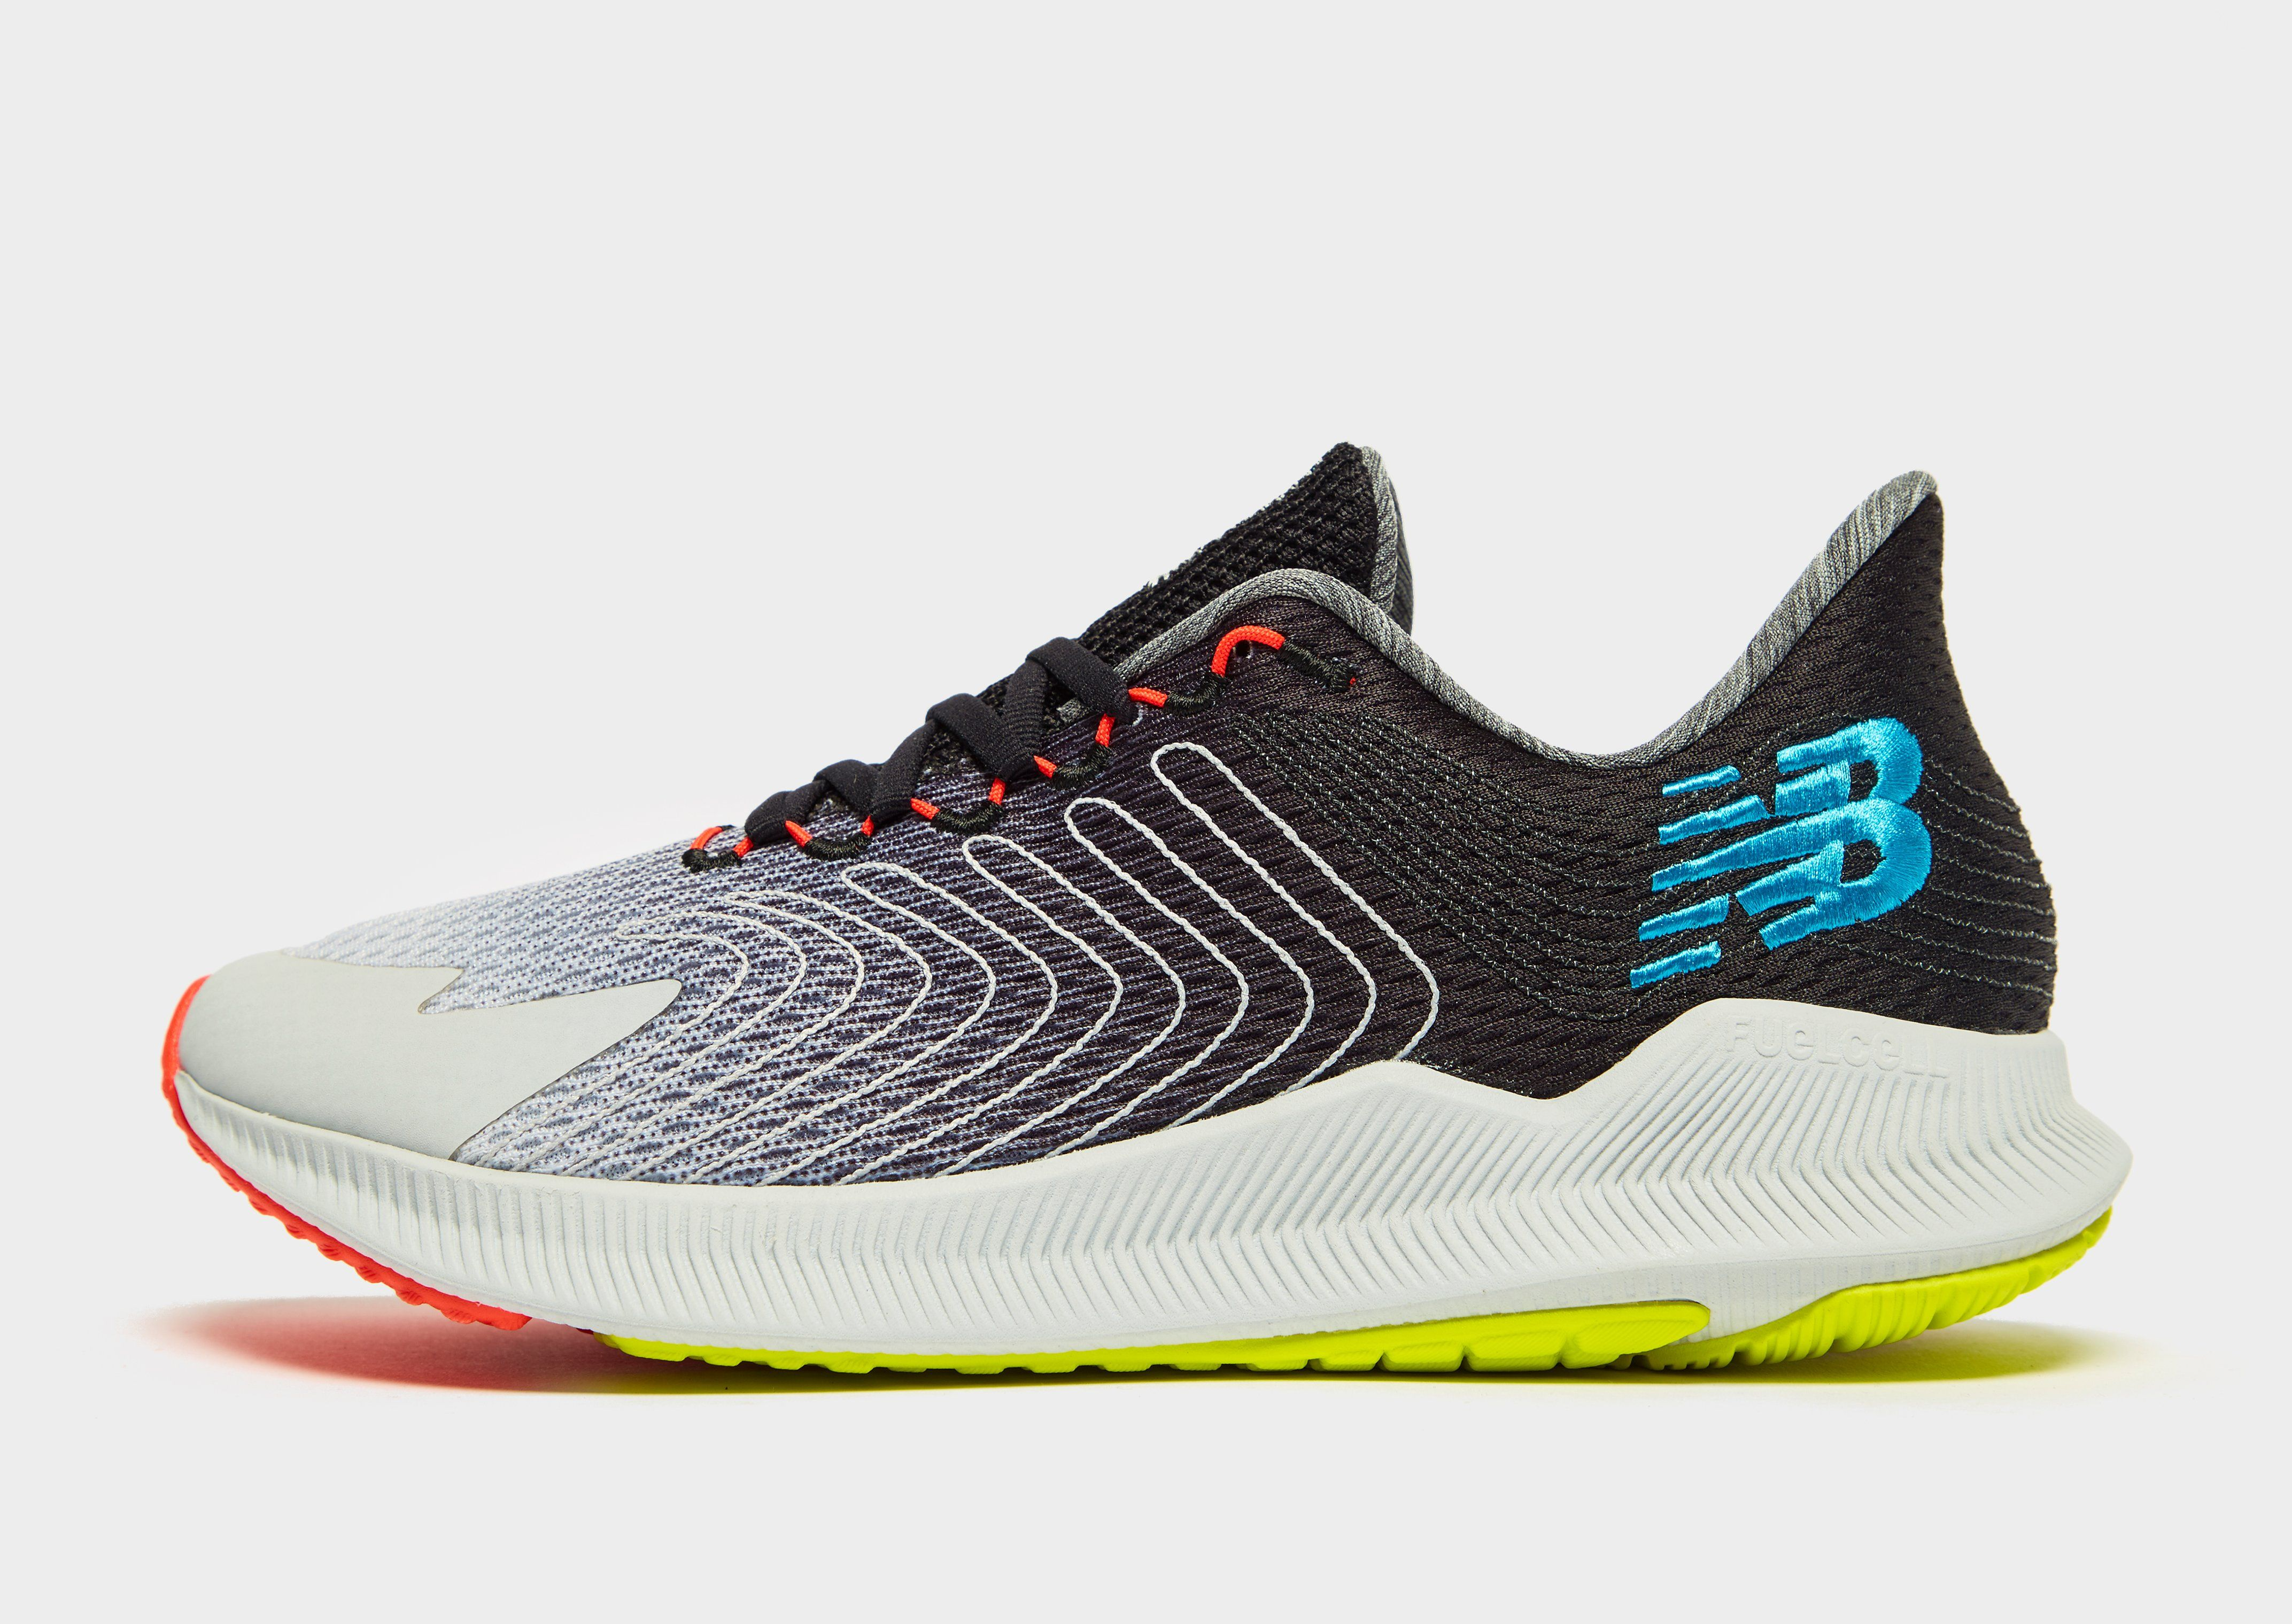 New Balance FuelCell Propel | JD Sports